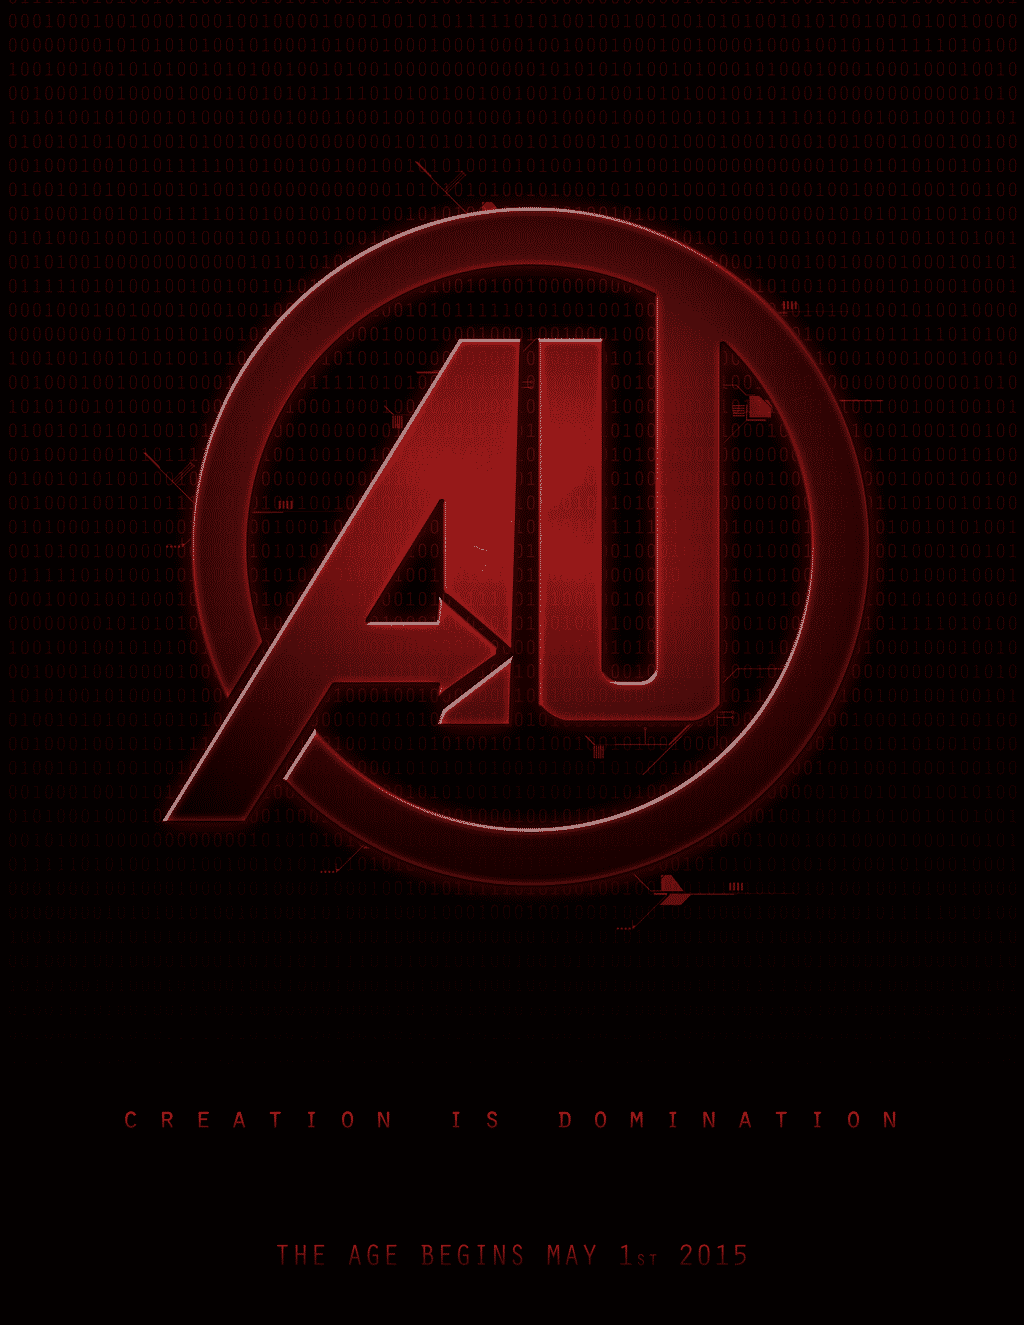 the_avengers__age_of_ultron___teaser_poster_2_by_mrsteiners-d6ehjct